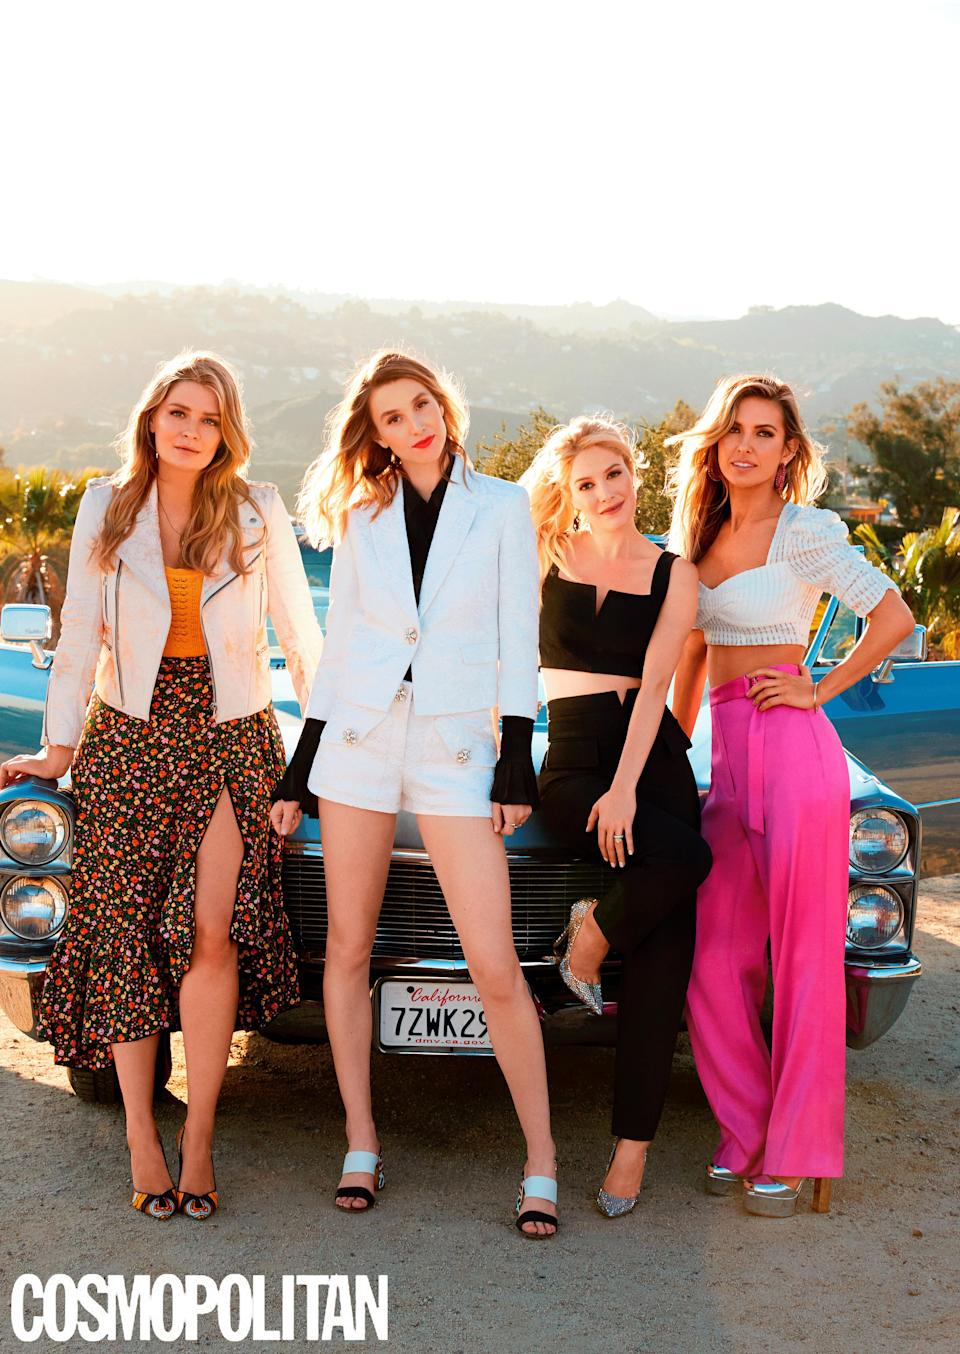 Mischa Barton, left, stands with some of her co-stars on